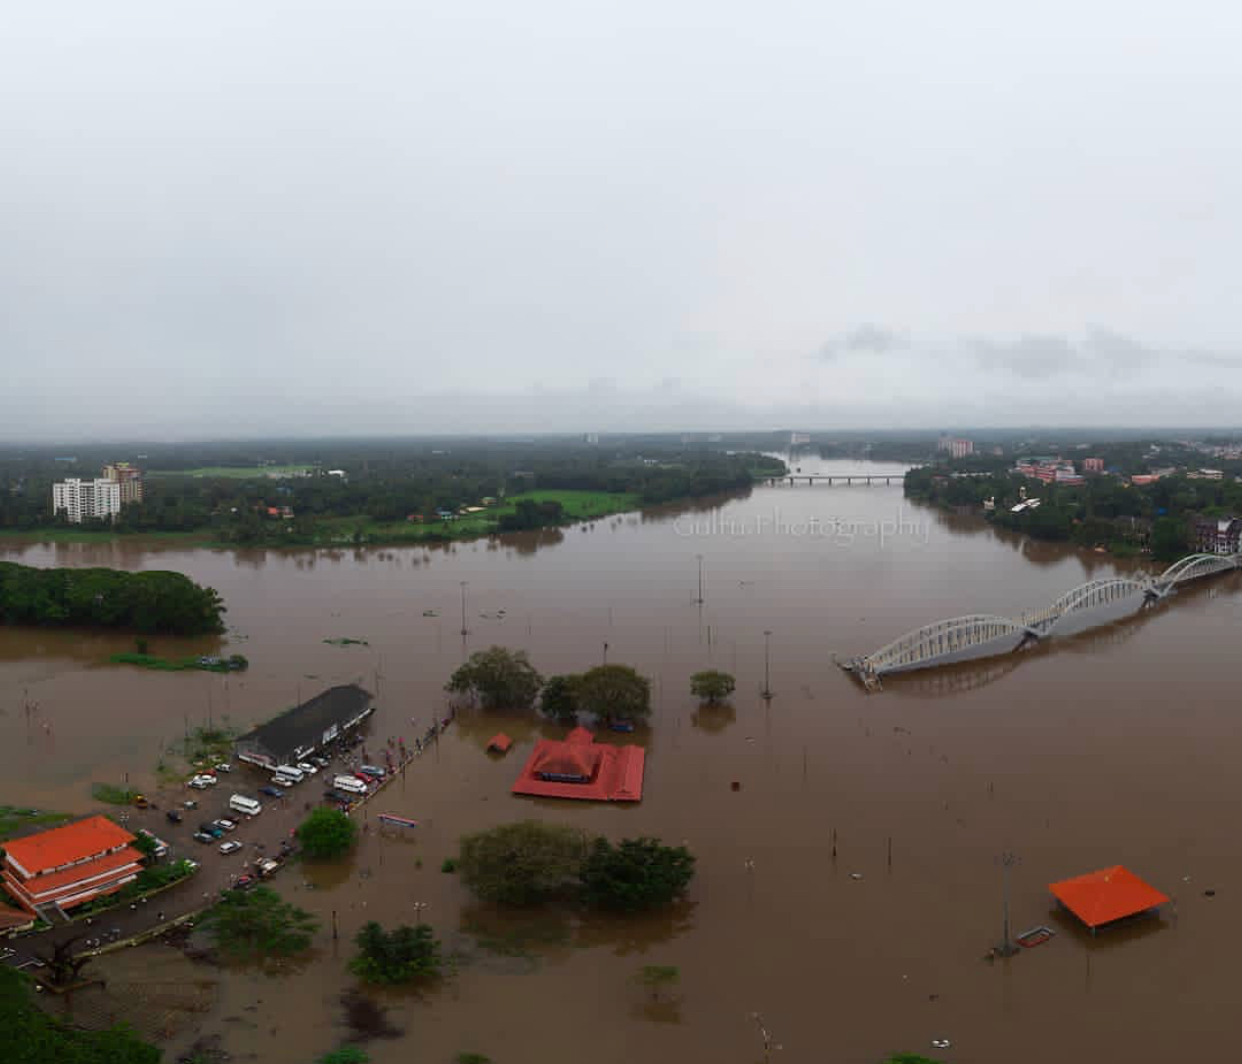 Kerala Monsoon Floods,River Periyar Floods Aluva Town and sivaTemple,aluva manapuram flood